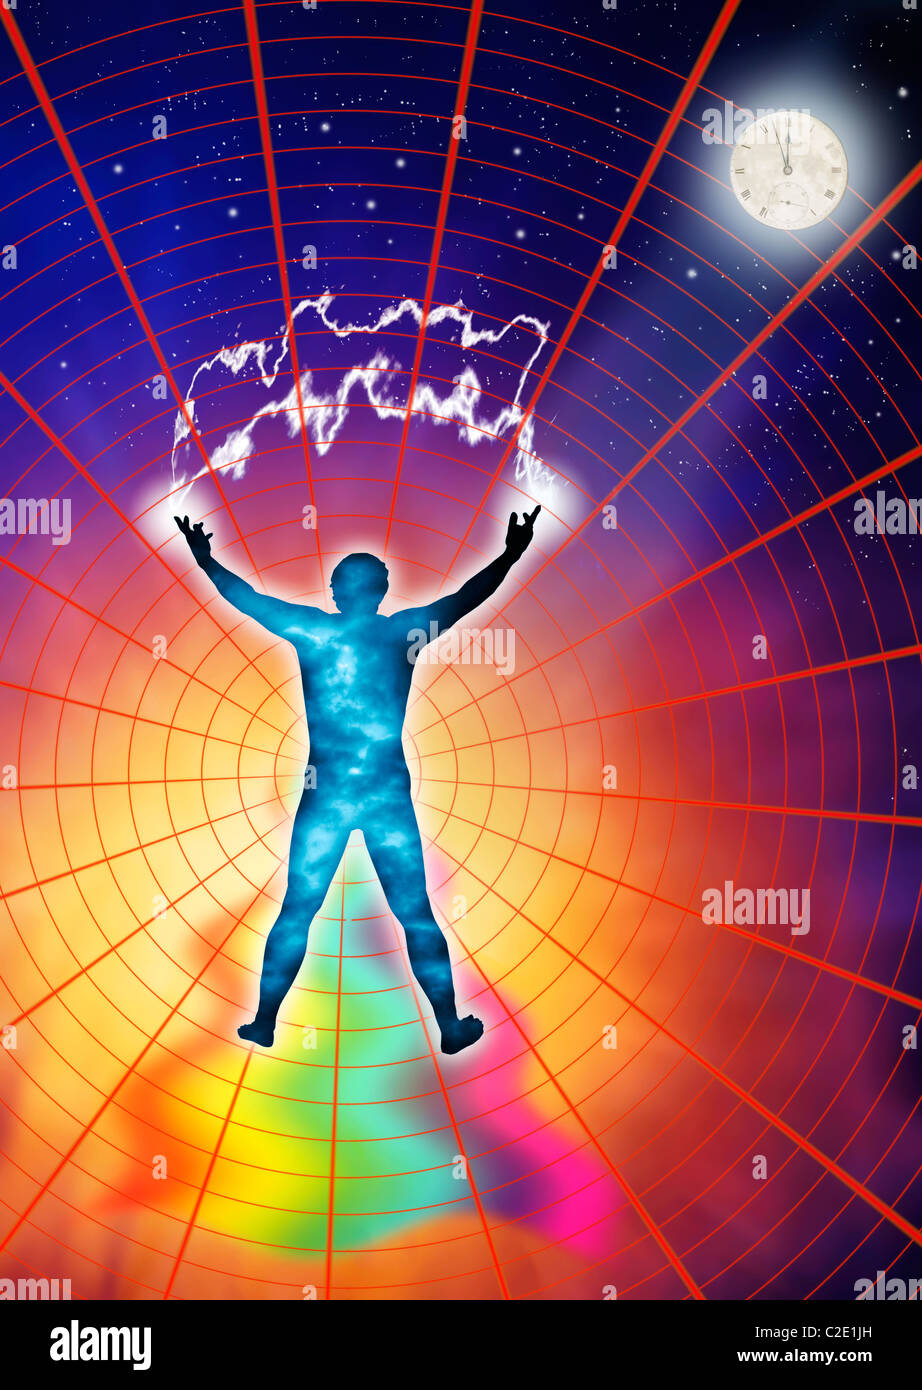 Concept to show health and wellbeing. - Stock Image